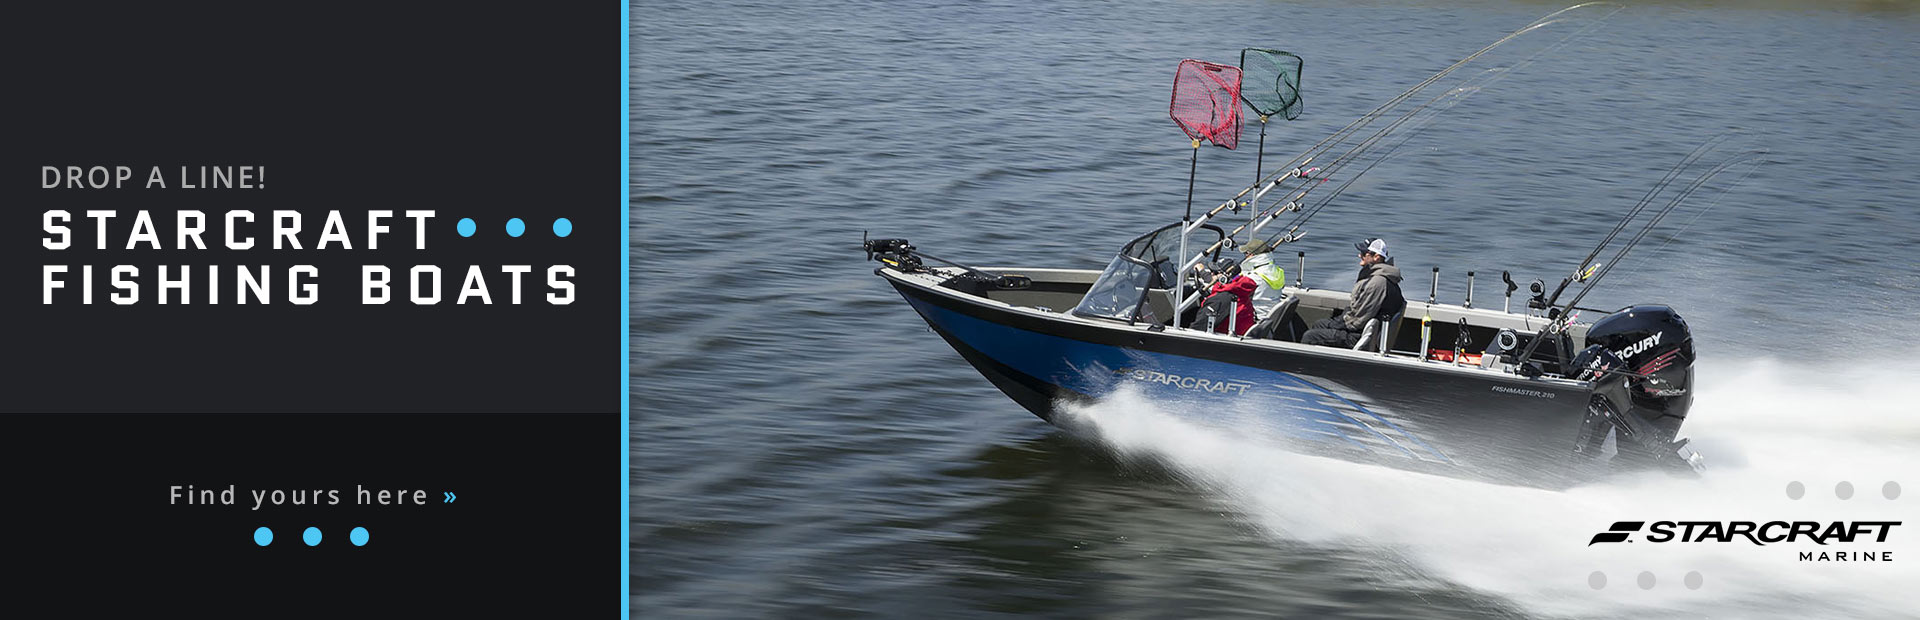 Starcraft Fishing Boats: Click here to view the models.